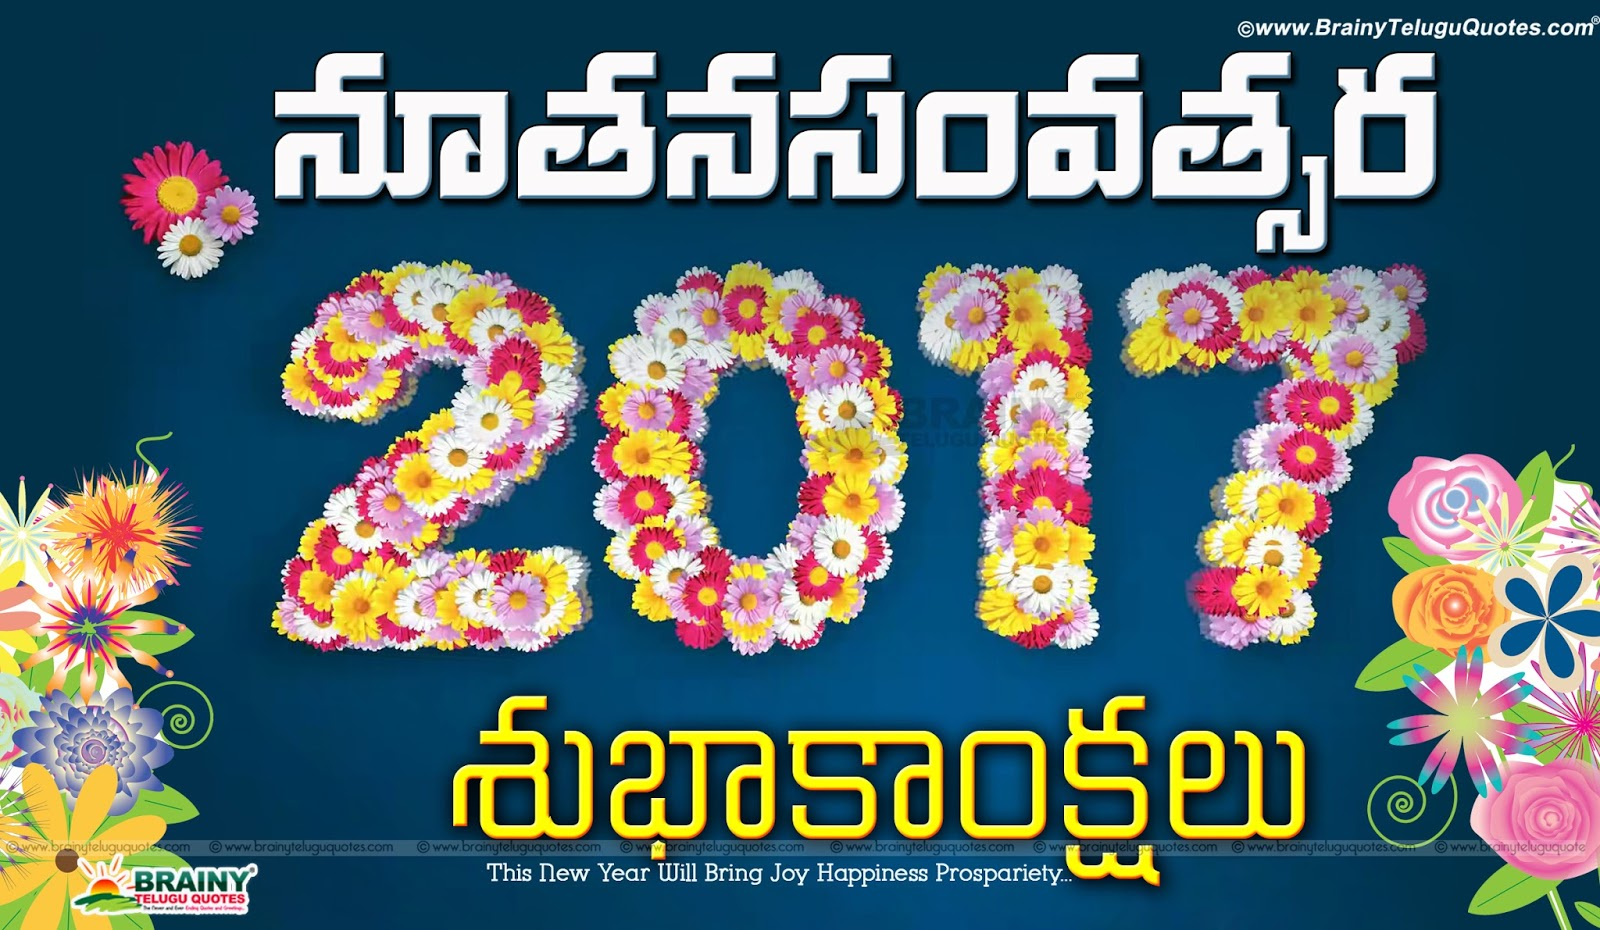 Happy new year 2017 quotes greetings in telugu brainyteluguquotes here is the latest telugu new year greetings with hd wallpapers in telugu telugu 2017 quotes greetings with hd wallpapers telugu nutana samvatsara kristyandbryce Image collections